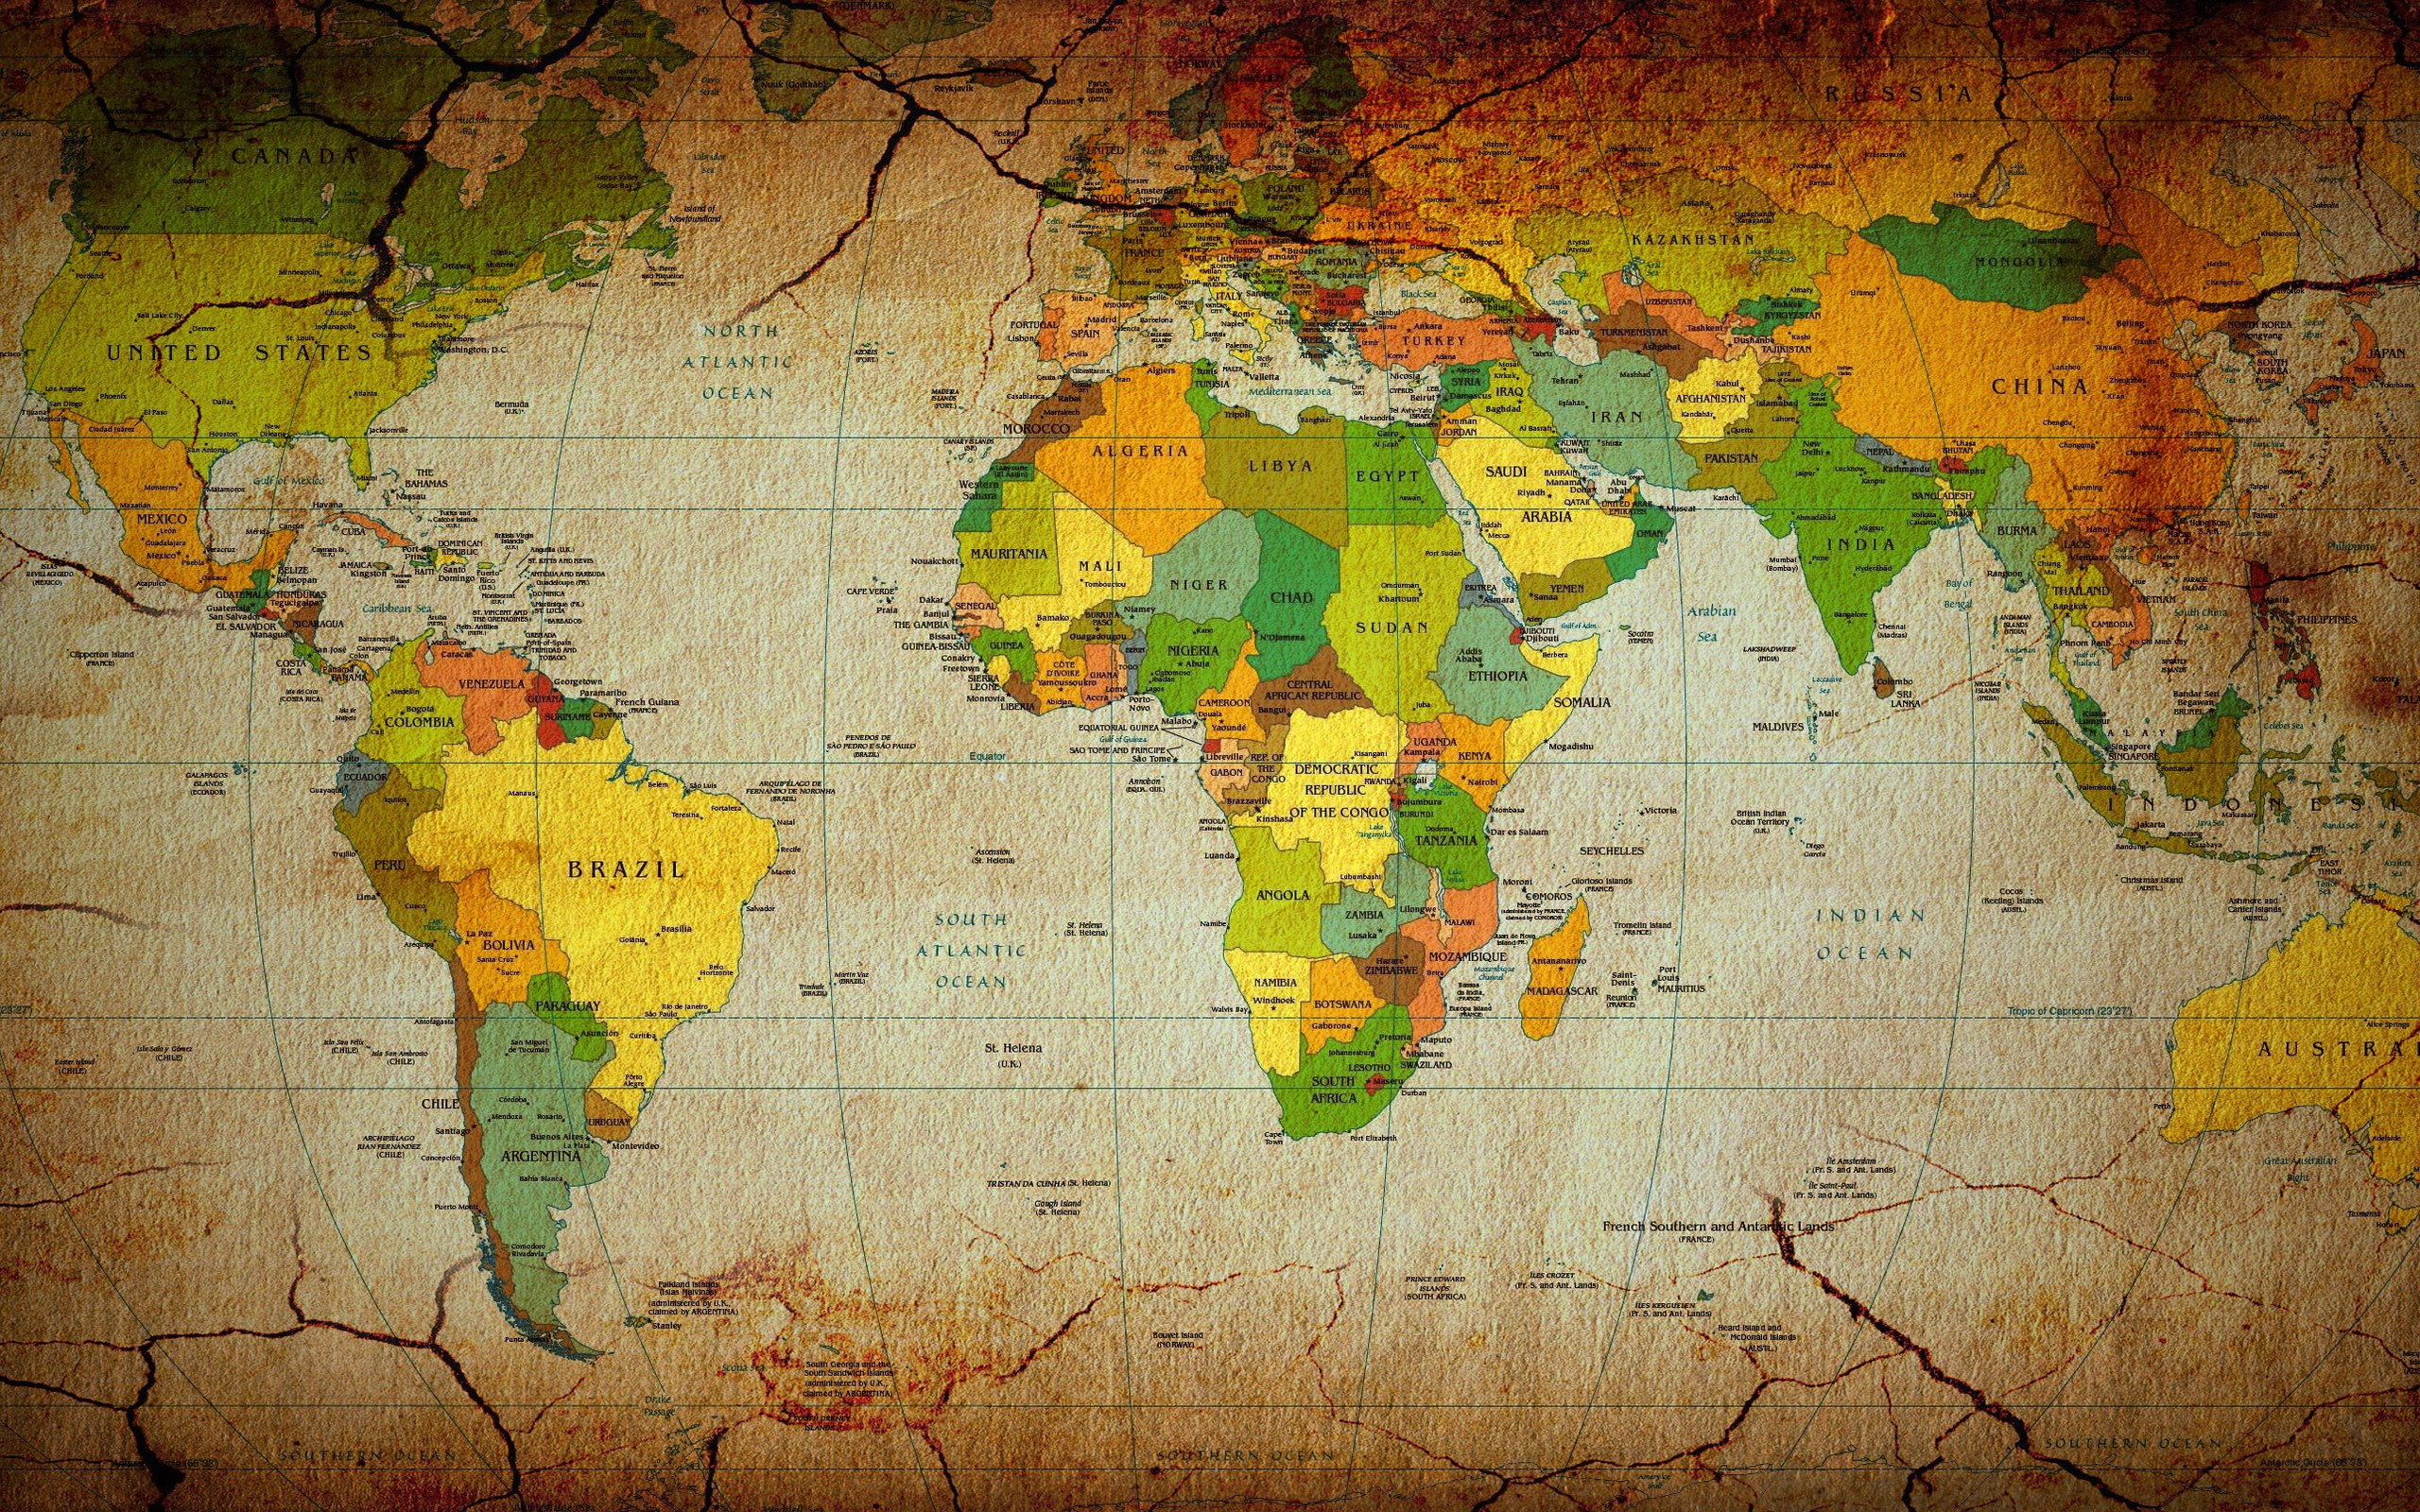 Maps Countries Wallpaper 2560x1600 Maps Countries Continents World 2560x1600